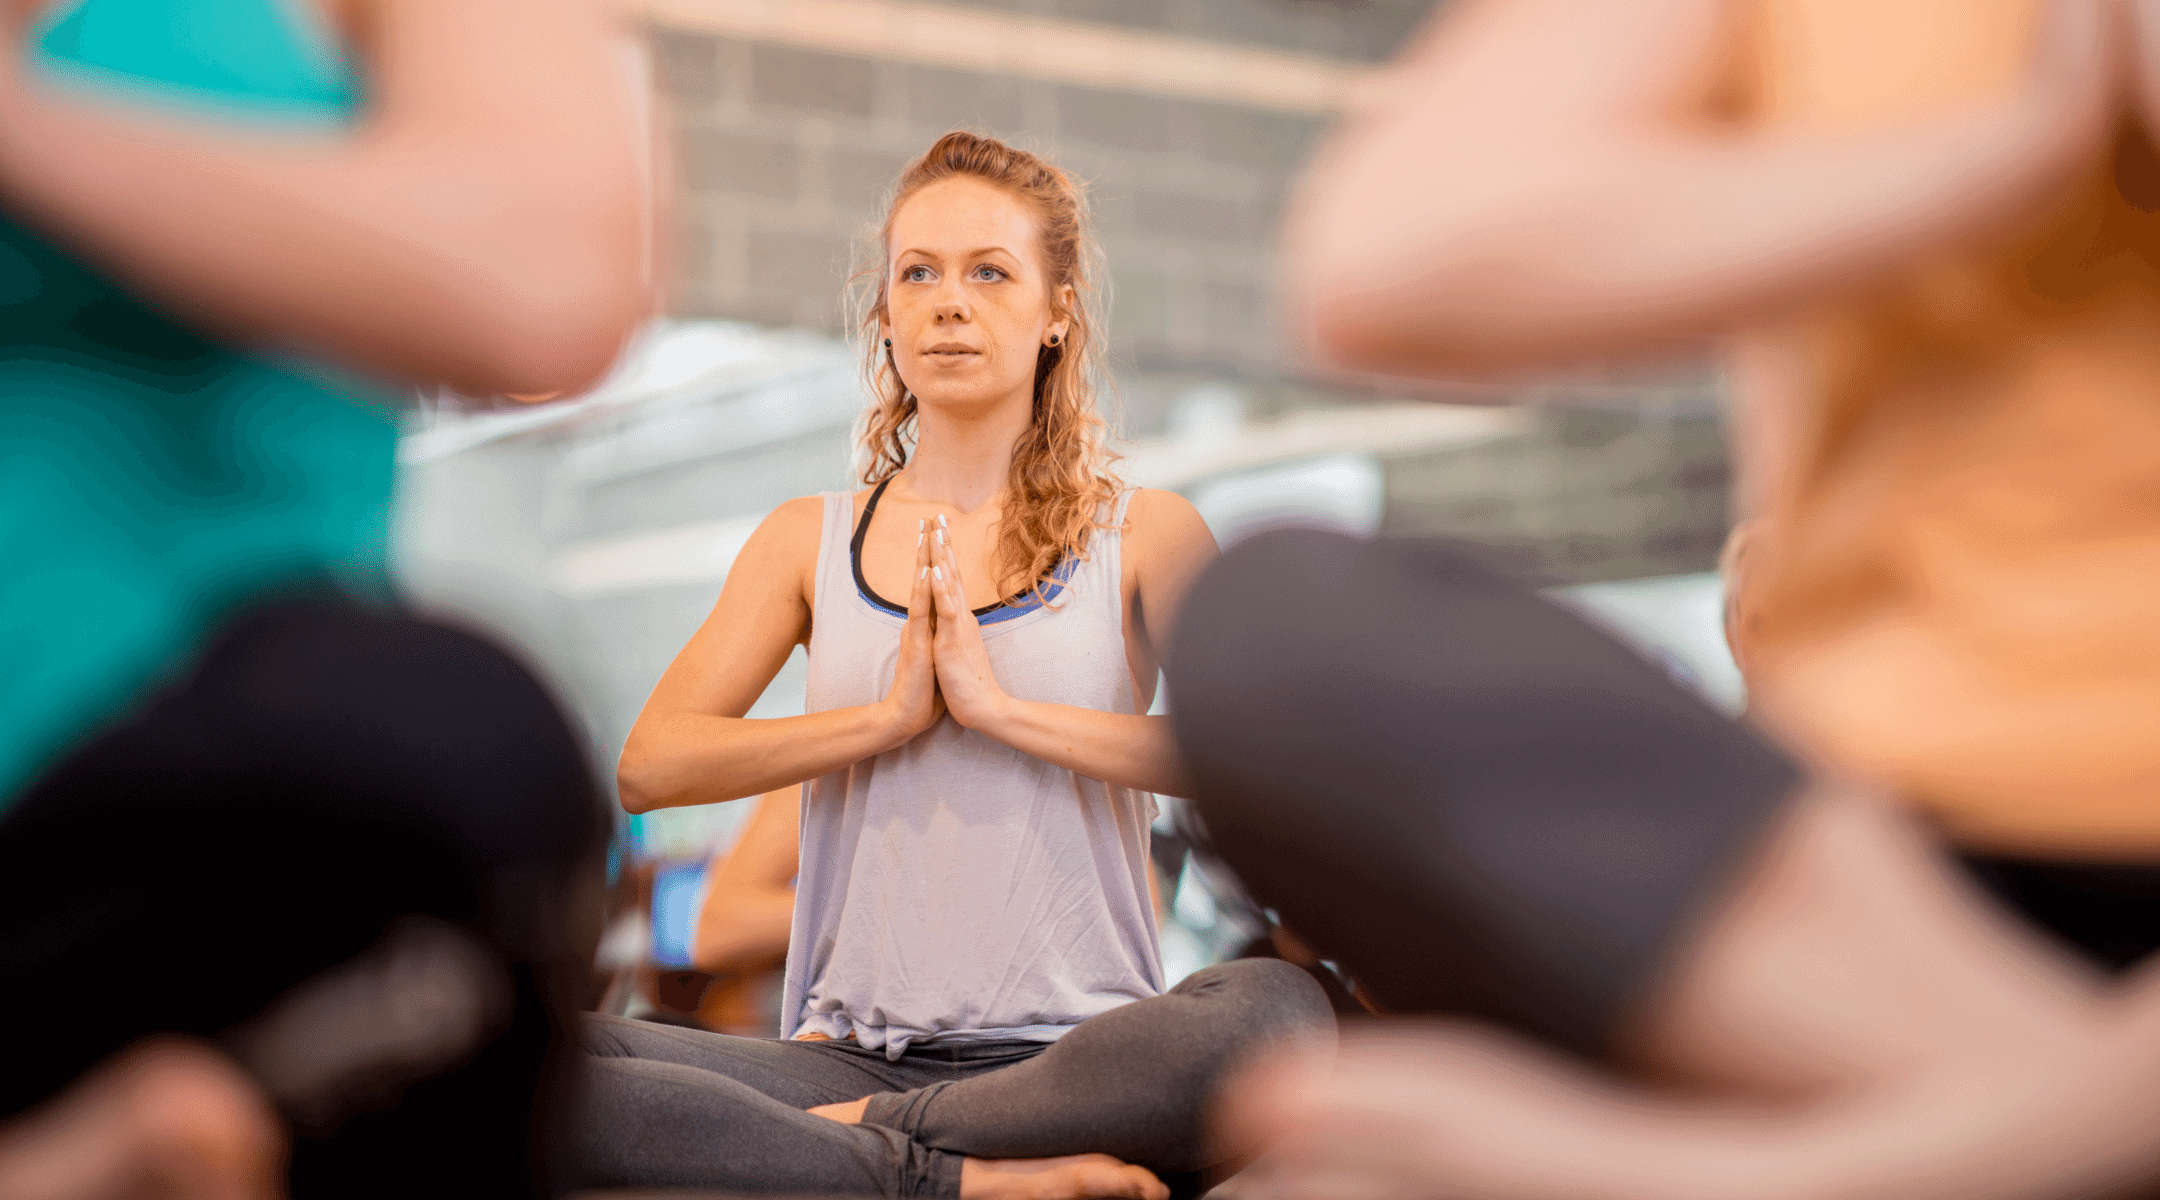 Woman sitting in a yoga pose with hands together - the link between diastasis recti and breathing